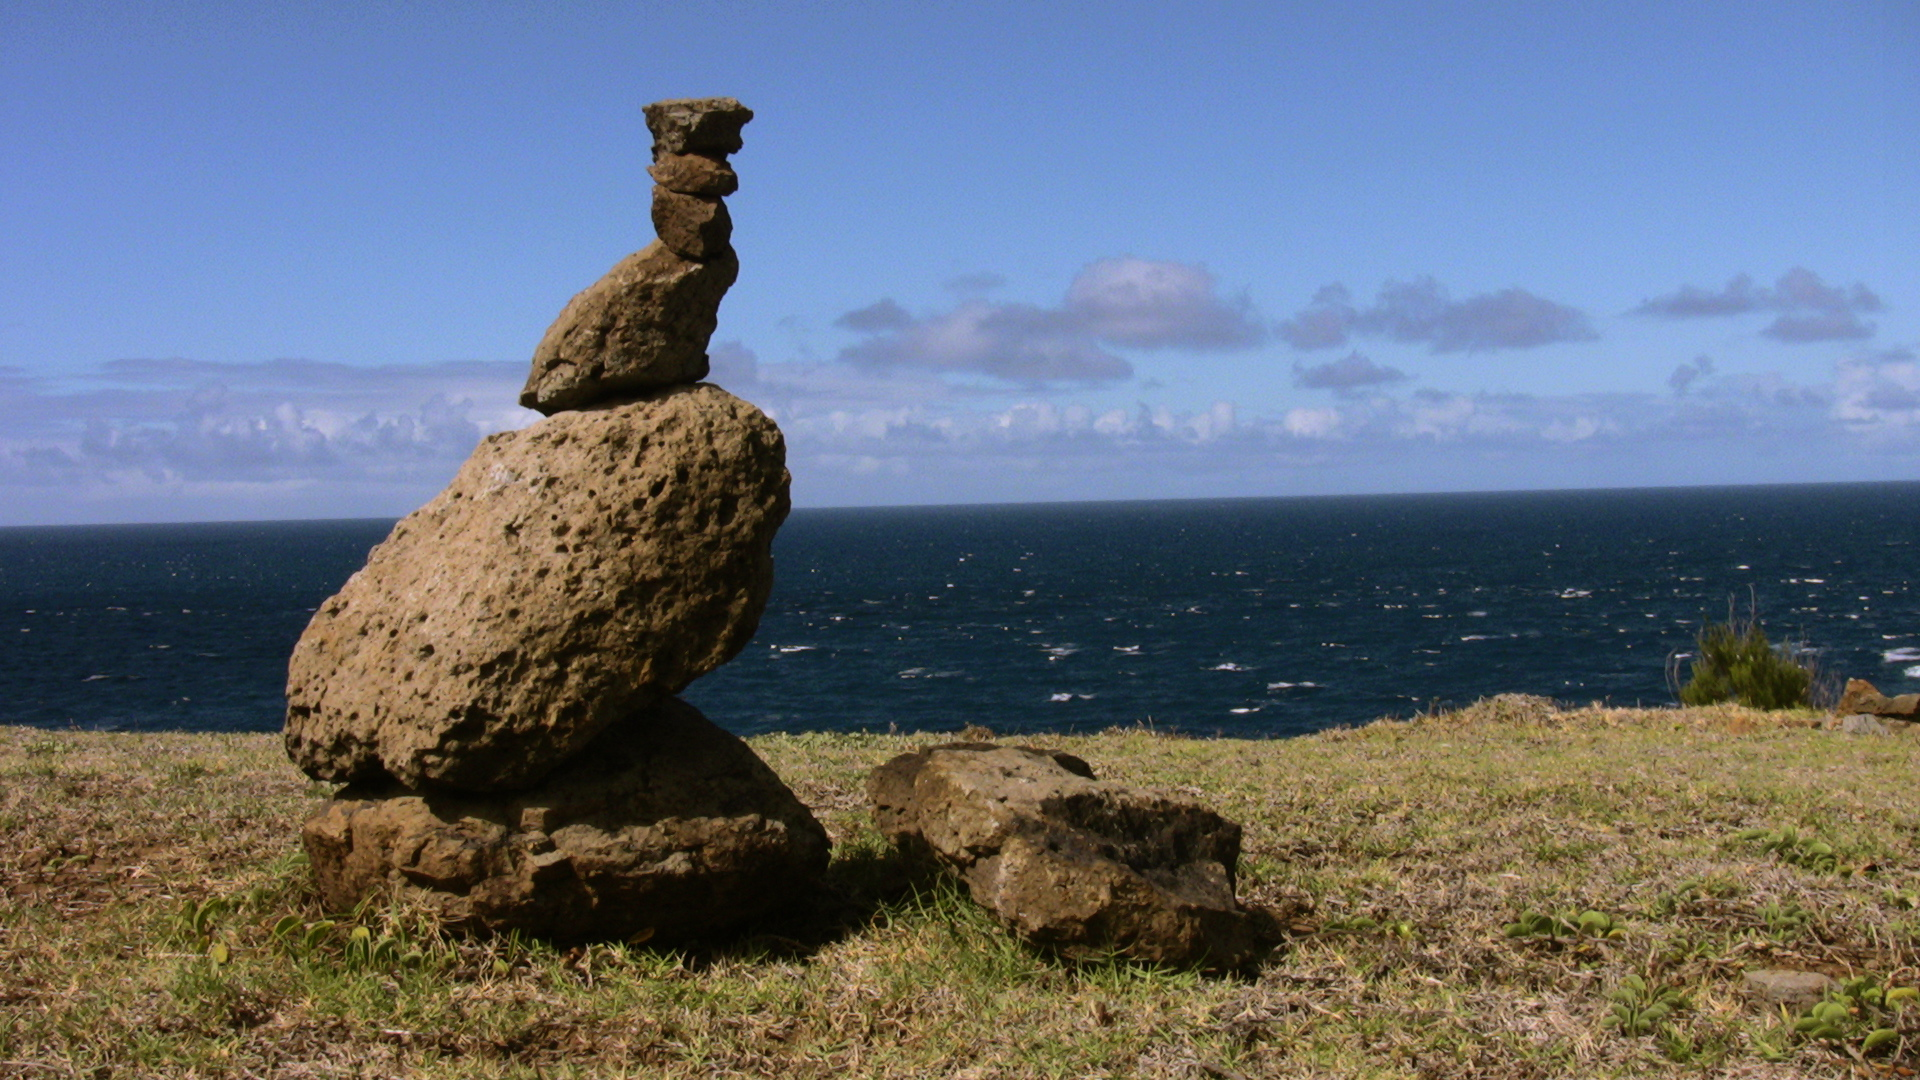 Cairn in Hawaii, 2008